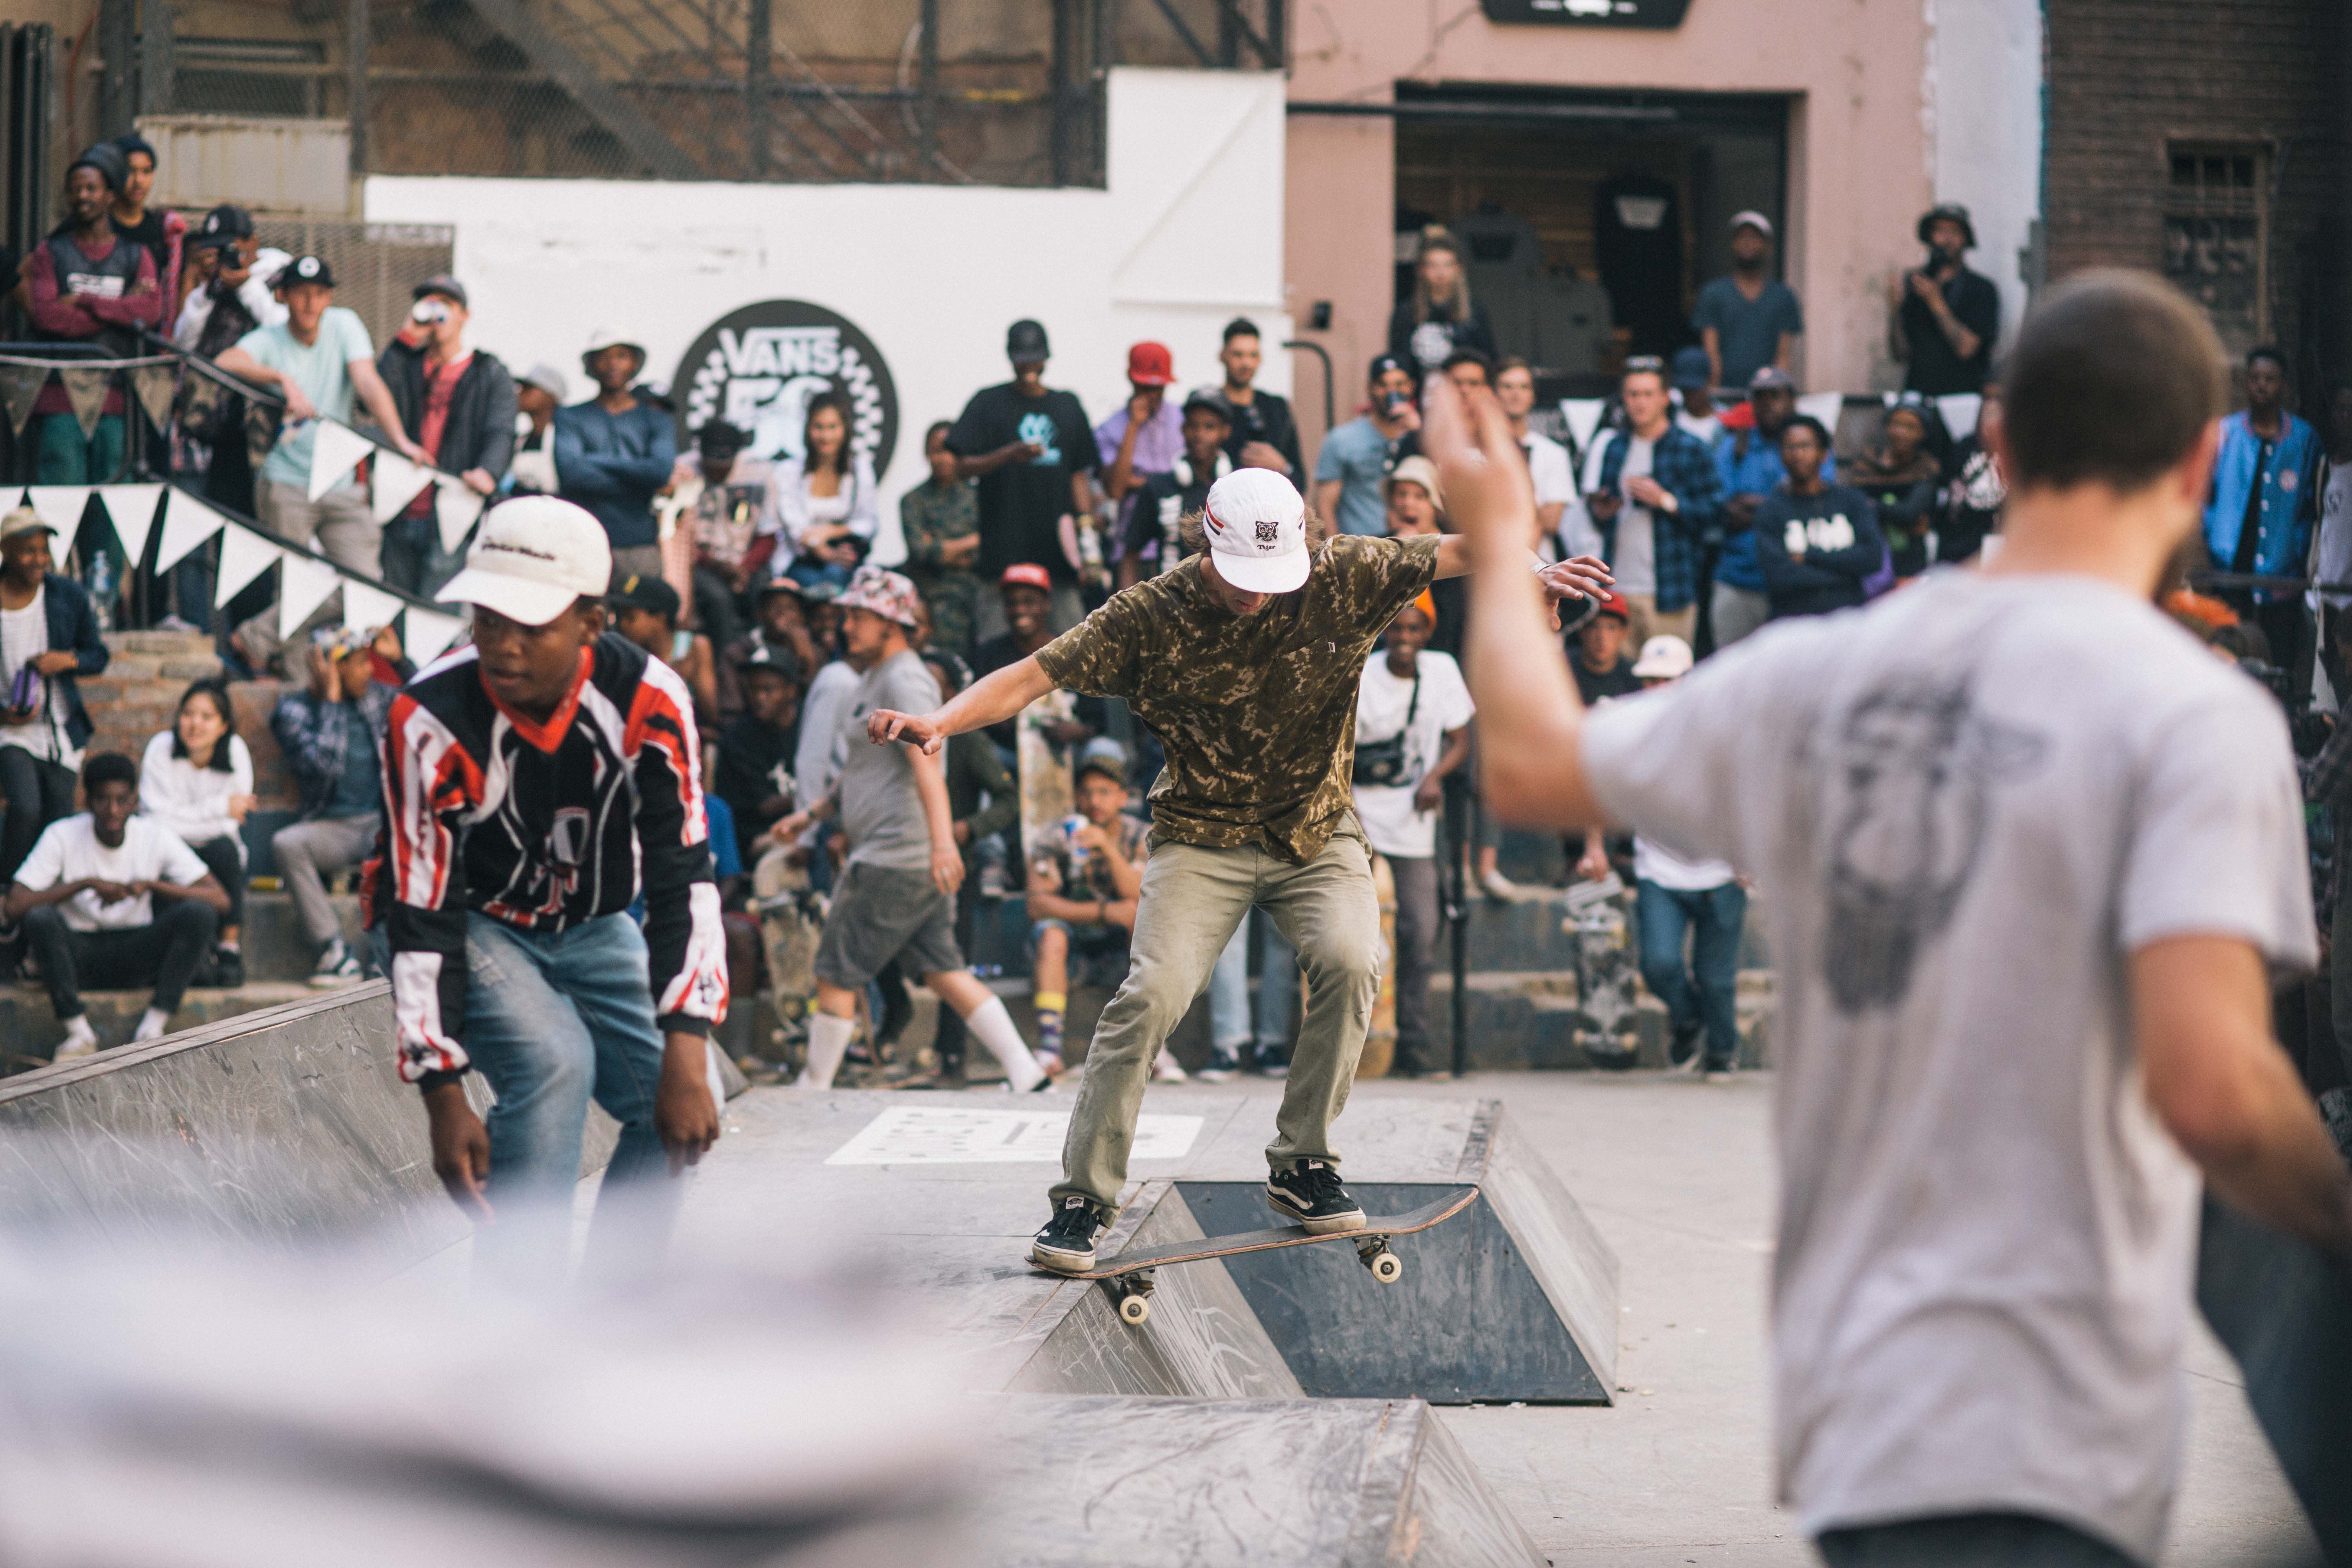 Skateboarding at its best at House of Vans Johannesburg